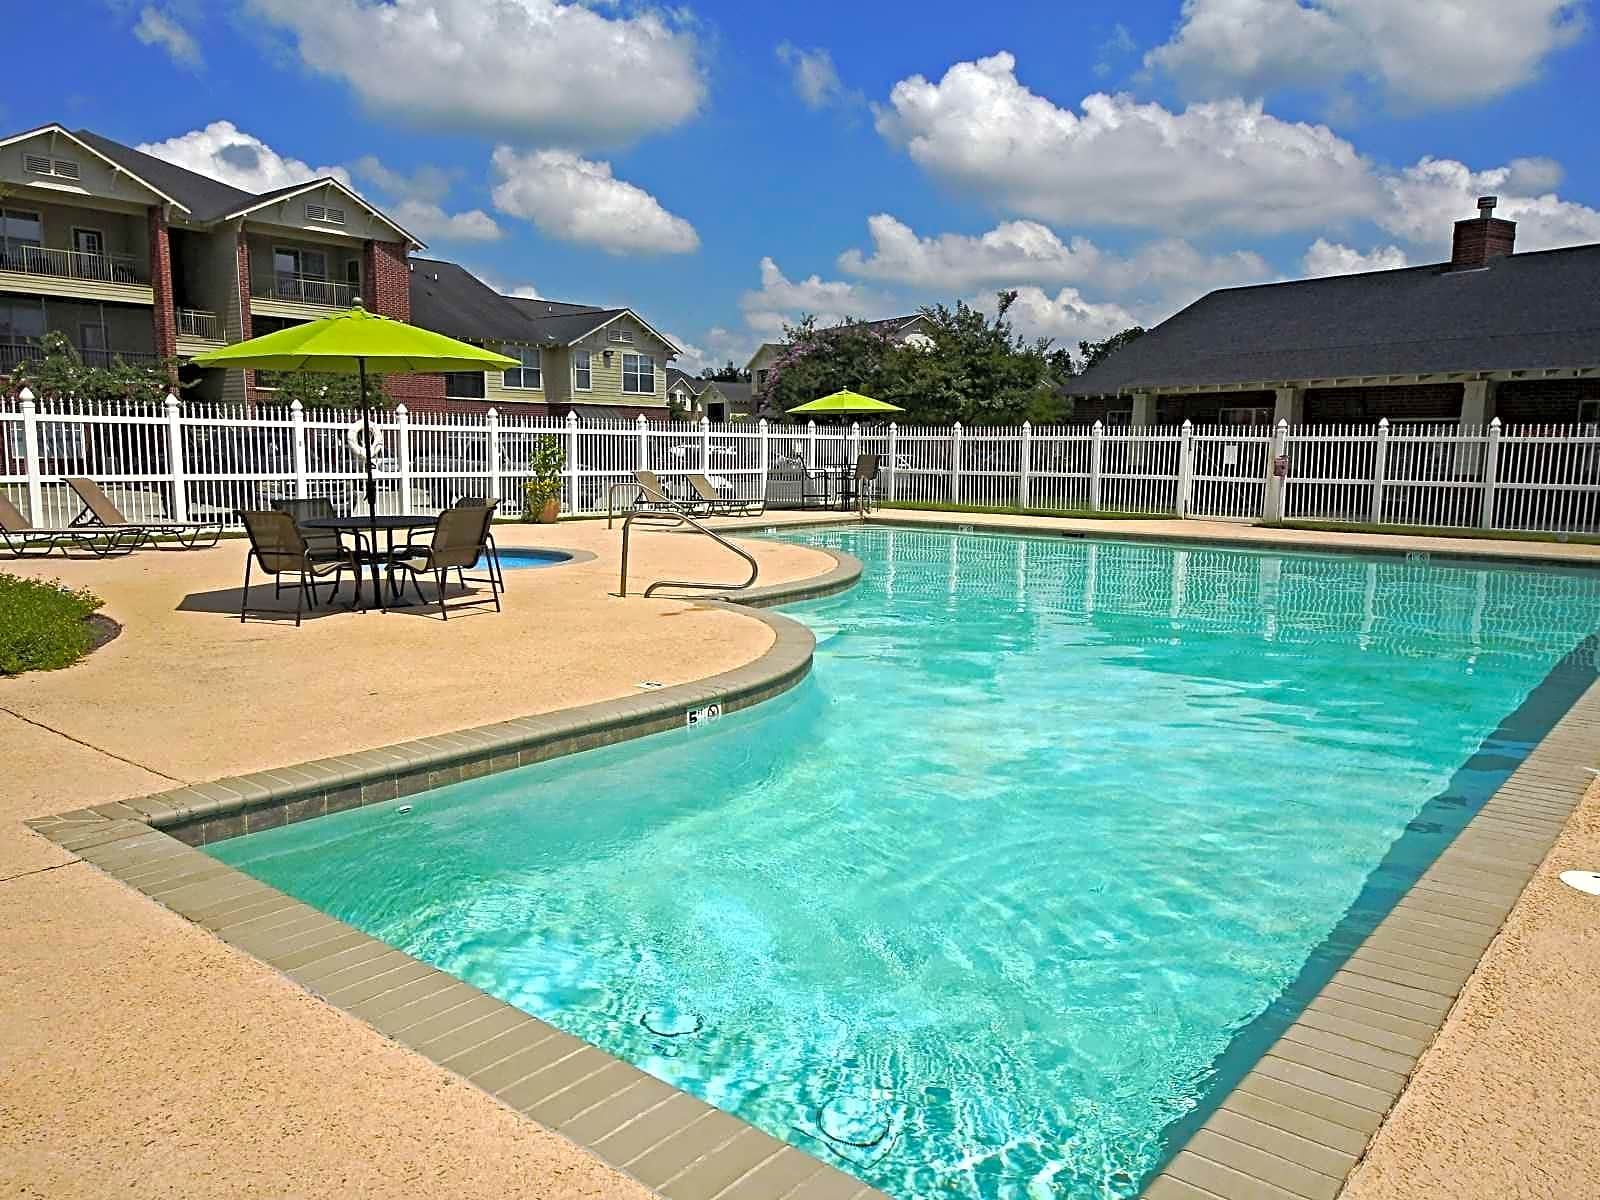 Apartments In Thibodaux La Near Nicholls State University